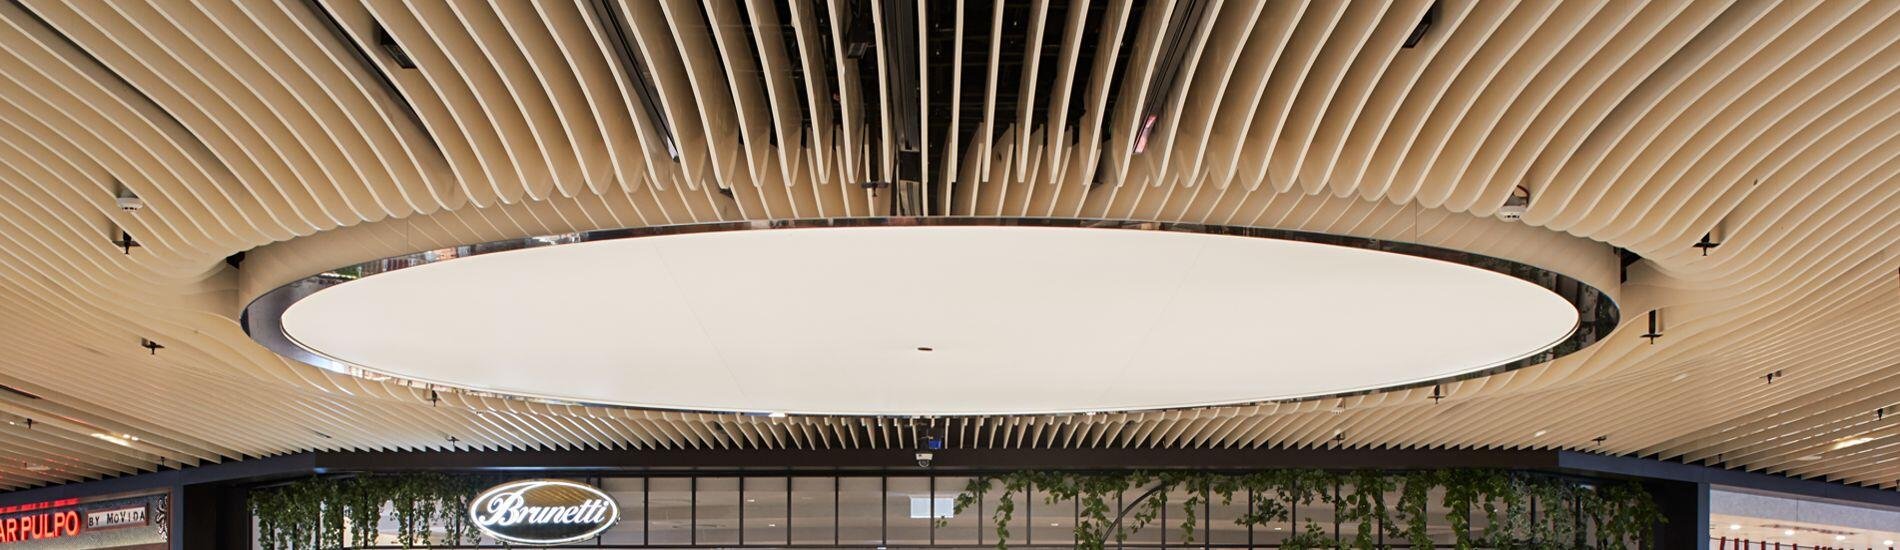 wave_blades_melbourne_airport_t2_retail